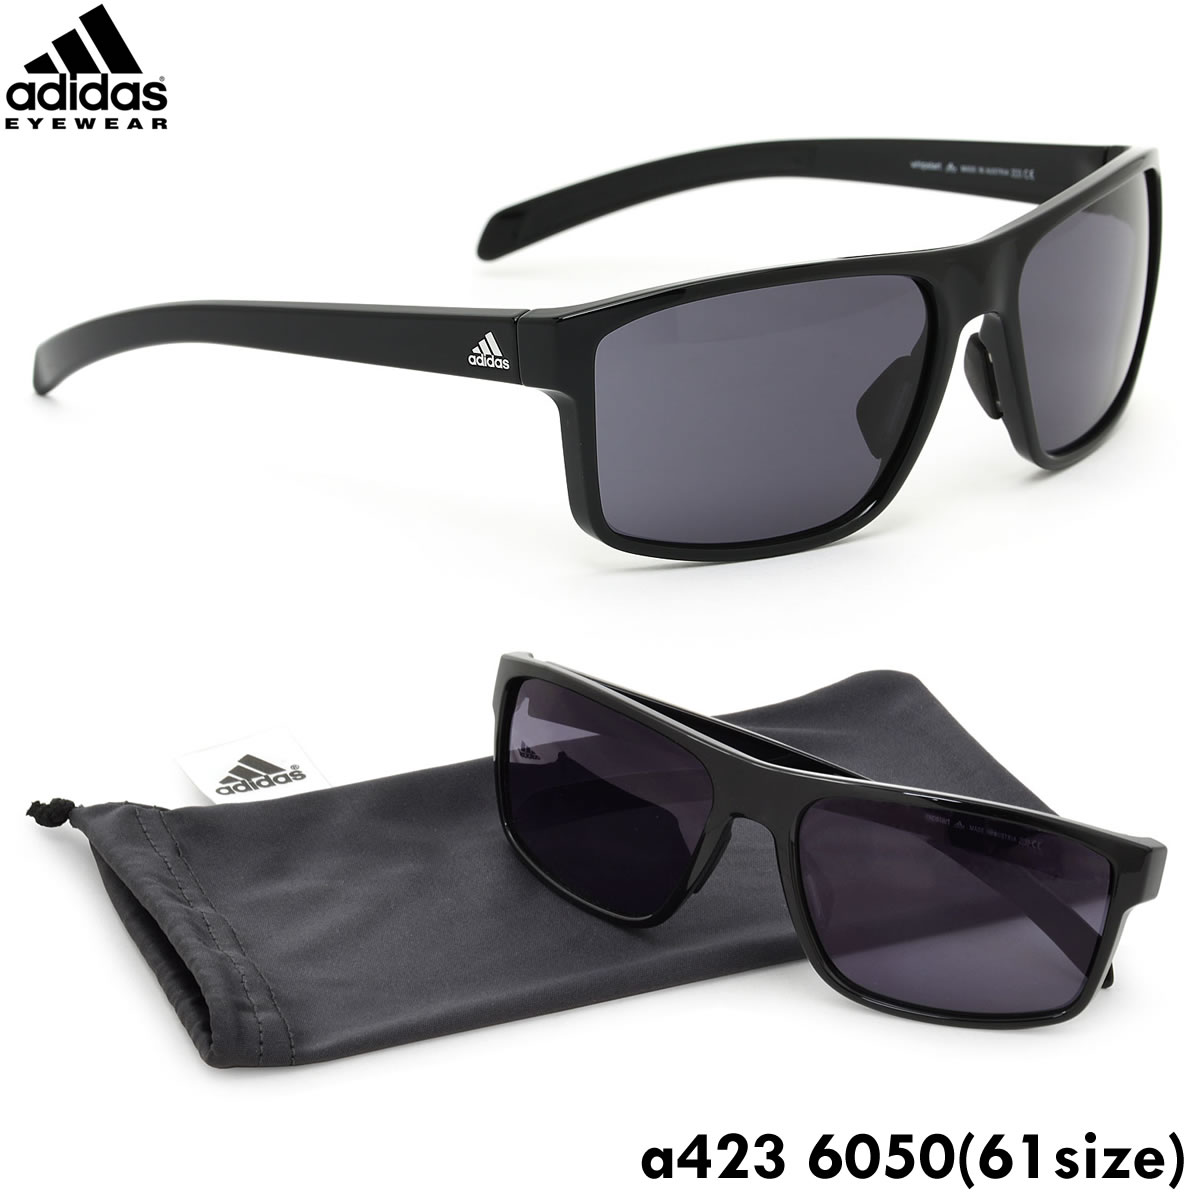 773ff25229e (Adidas) sunglasses a423 6050 61 size whipstart square sports sunglasses  adidas adidas outdoor men s women s points 10 times